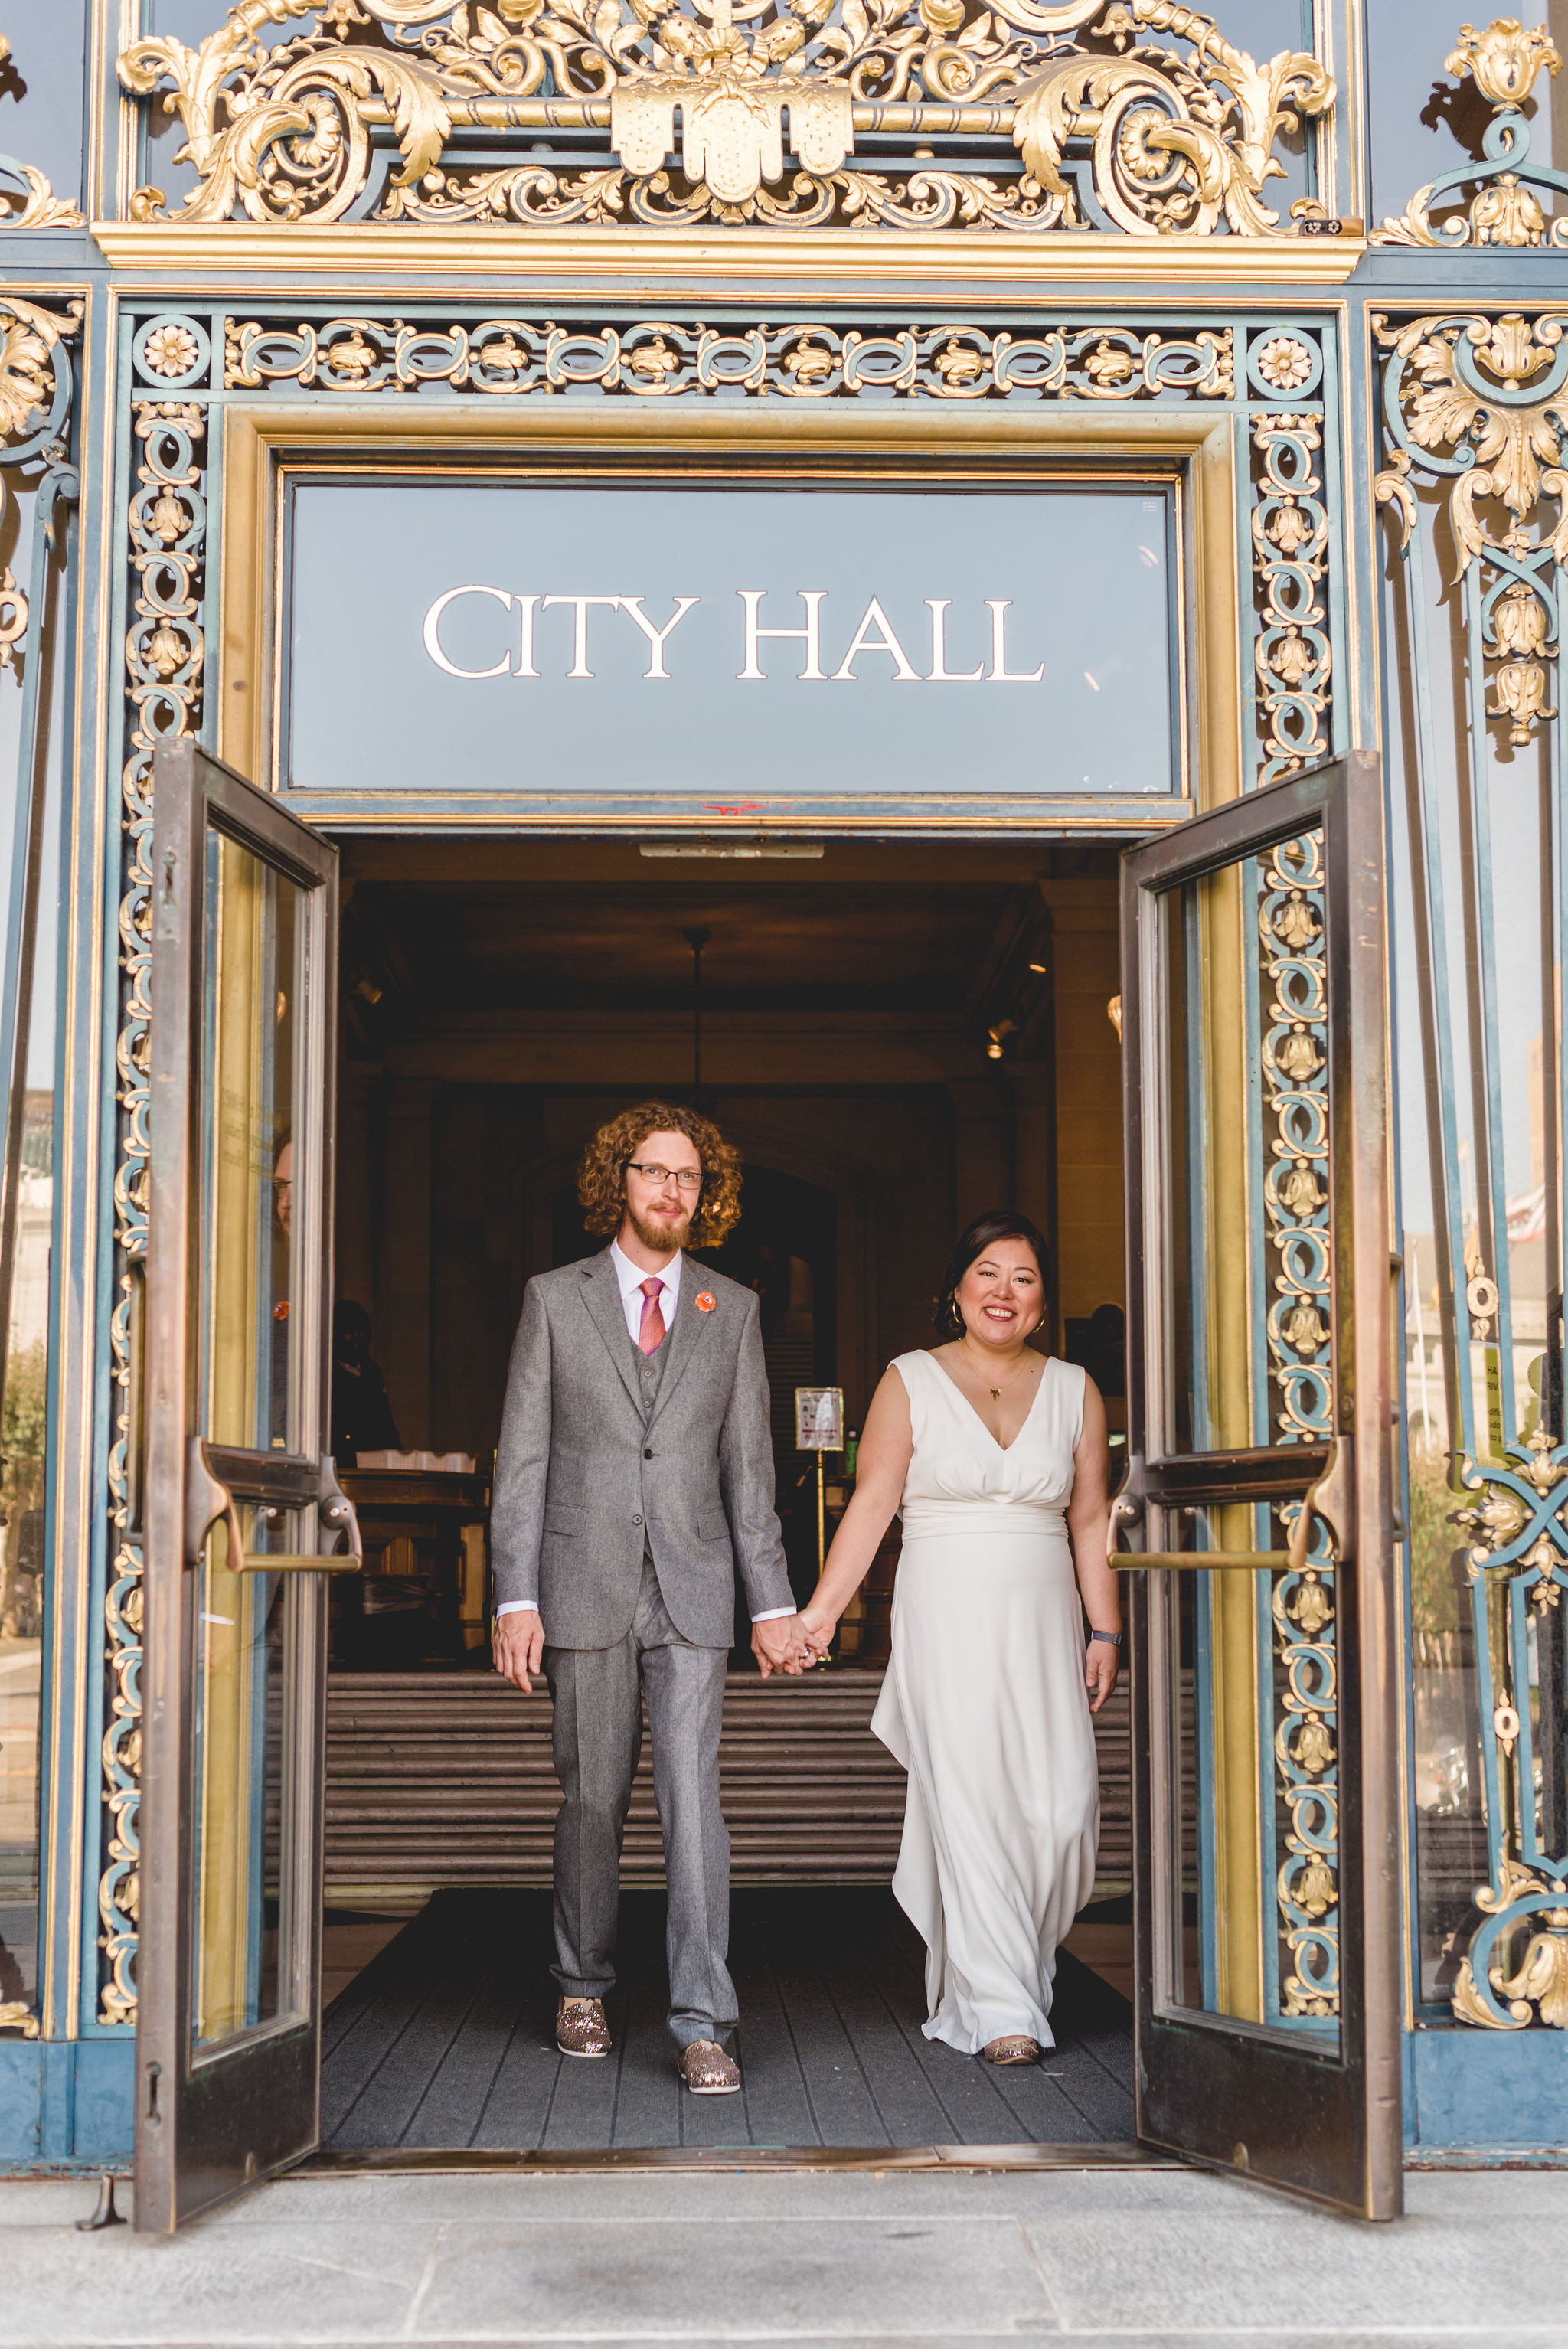 wtfjk_wedding-cityhall-portraits-76.jpg